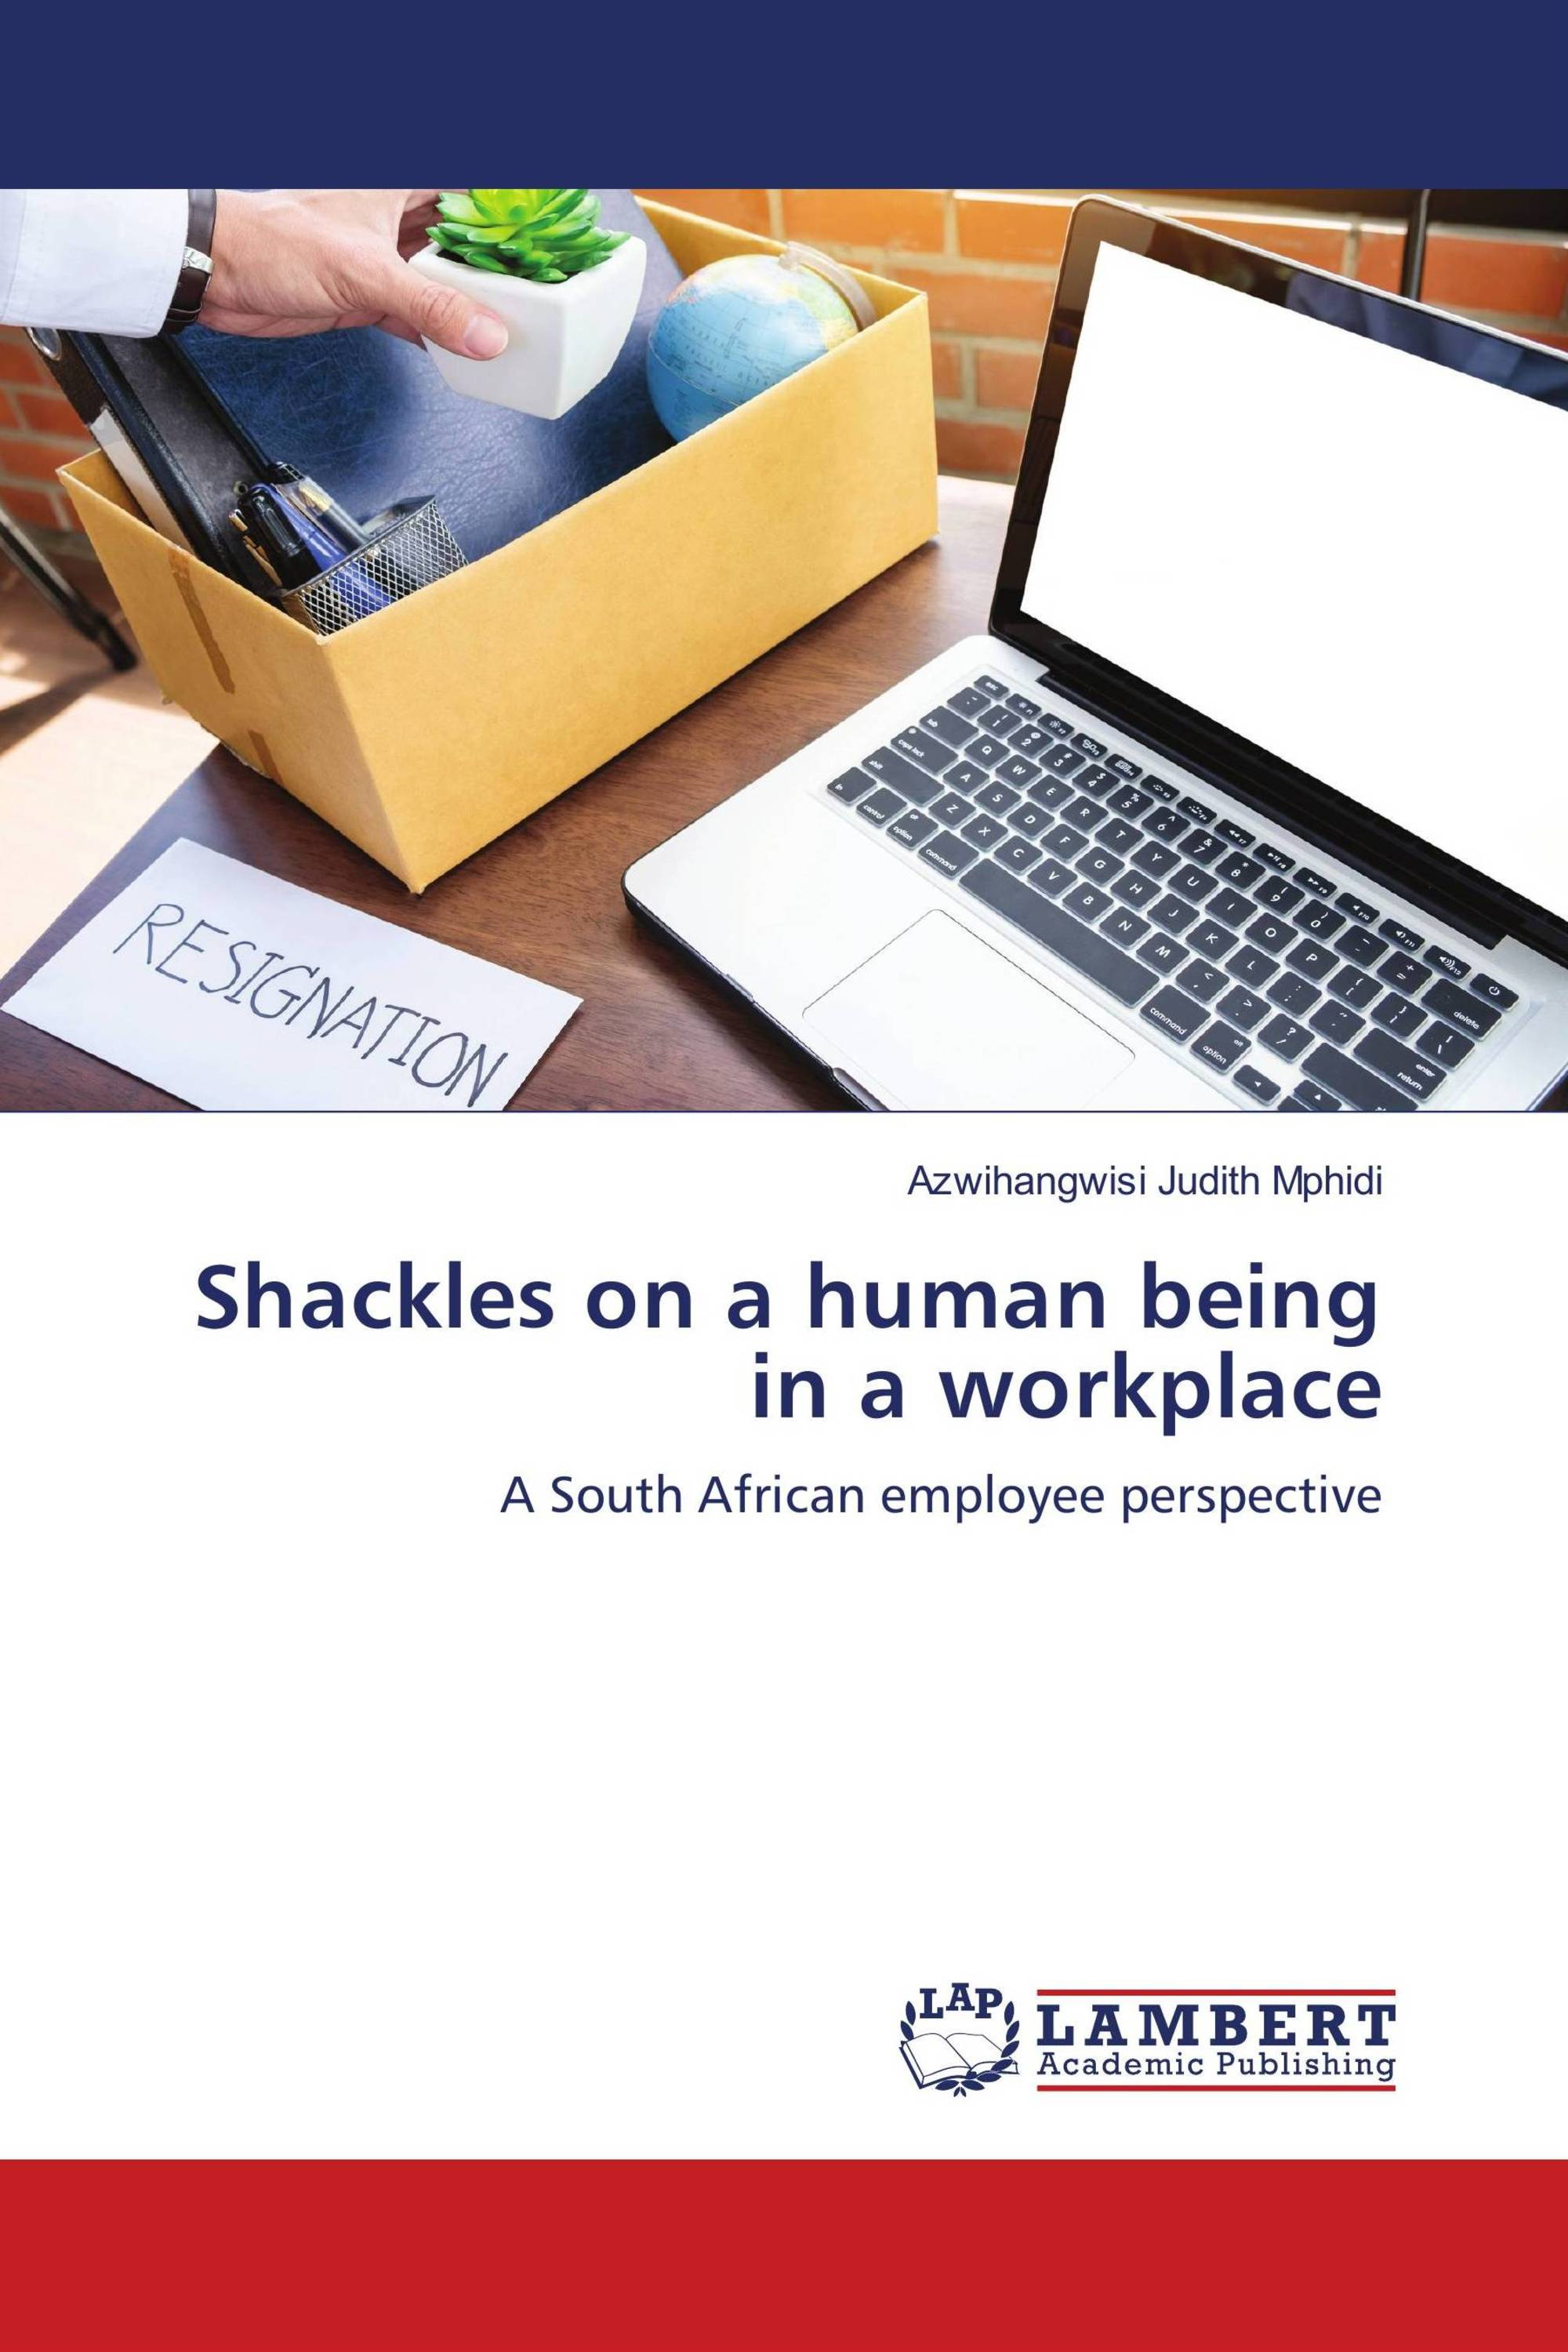 Shackles on a human being in a workplace